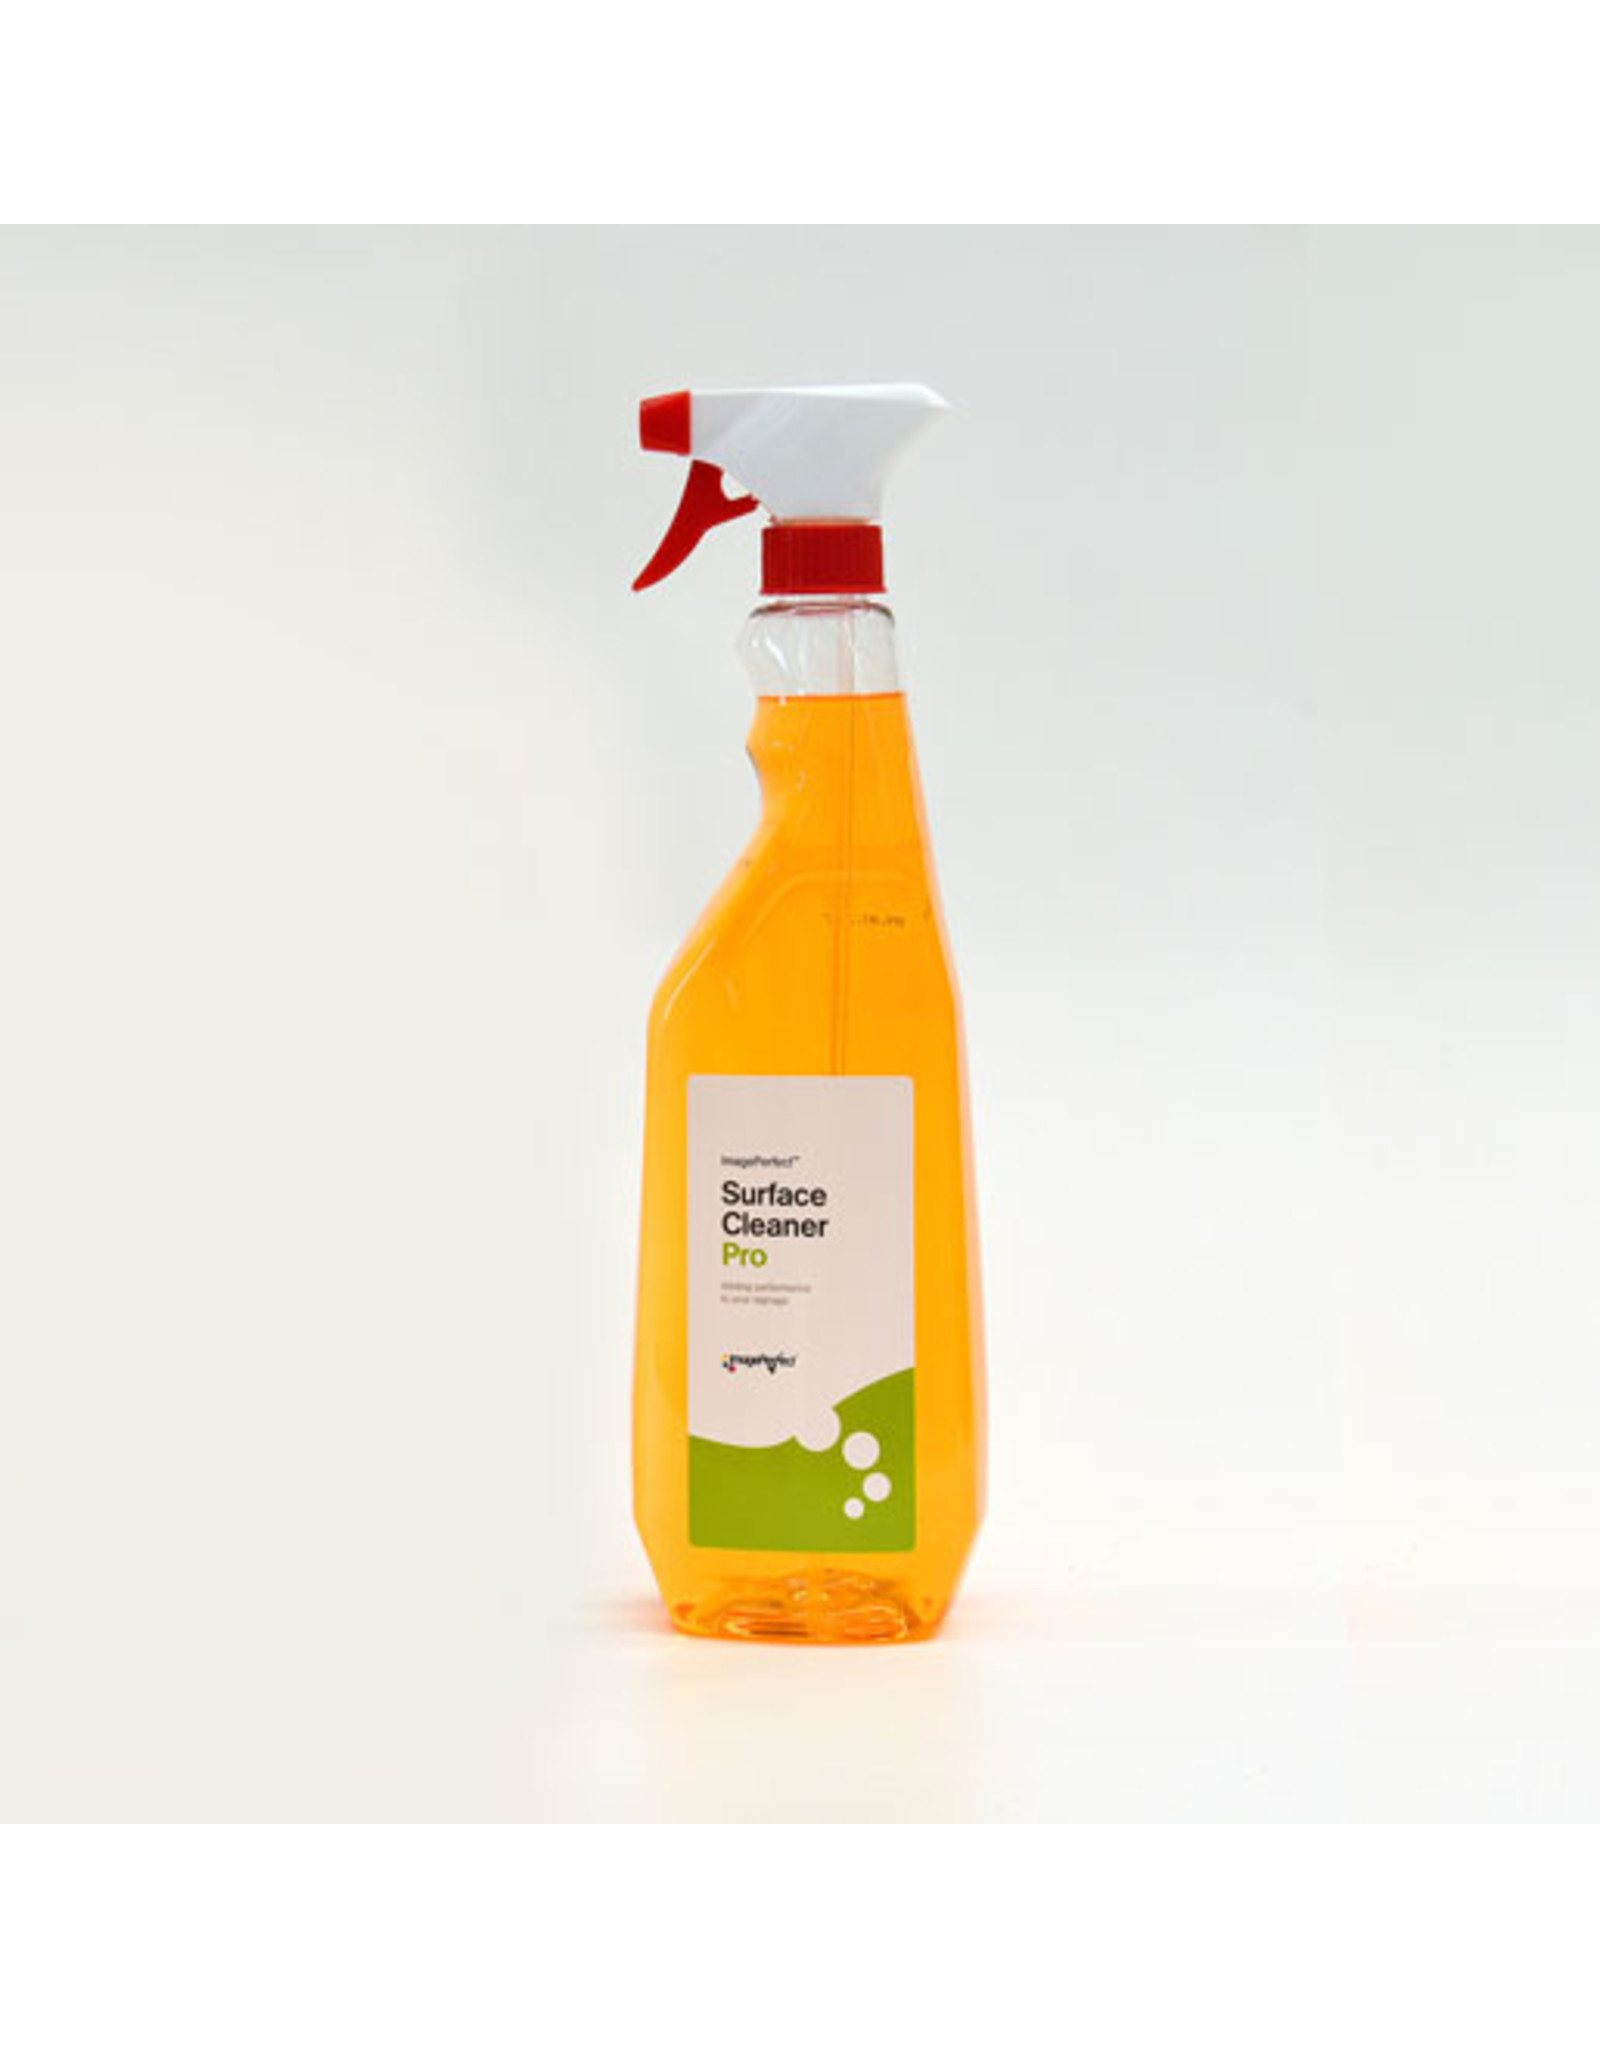 Surface Cleaner Pro